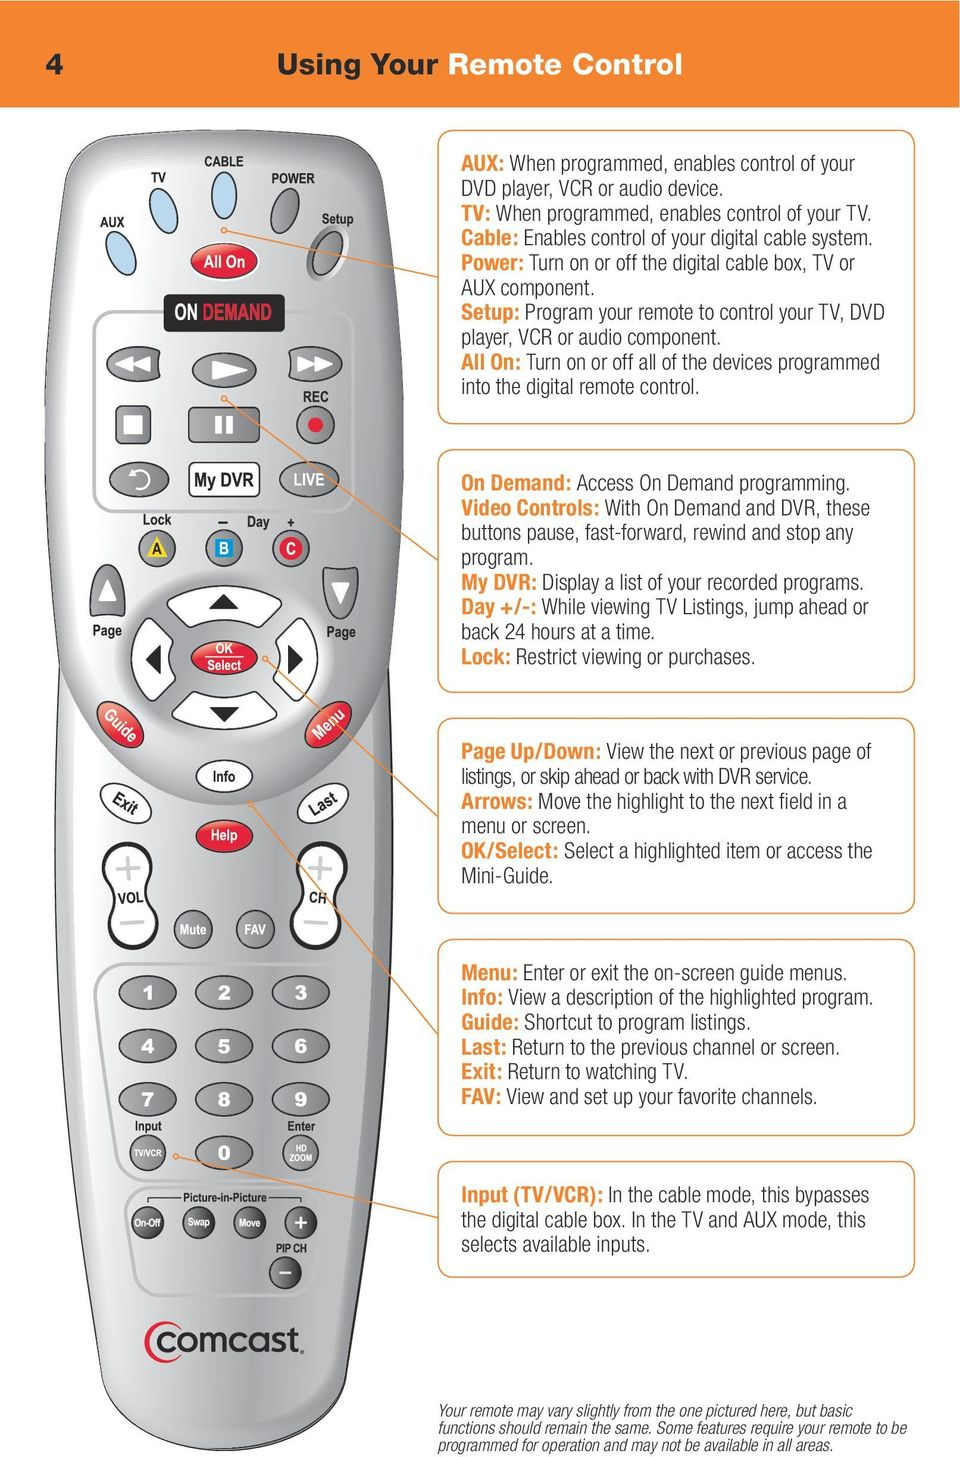 Setup: Program your remote to control your TV, DVD player, VCR or audio component. All On: Turn on or off all of the devices programmed into the digital remote control.